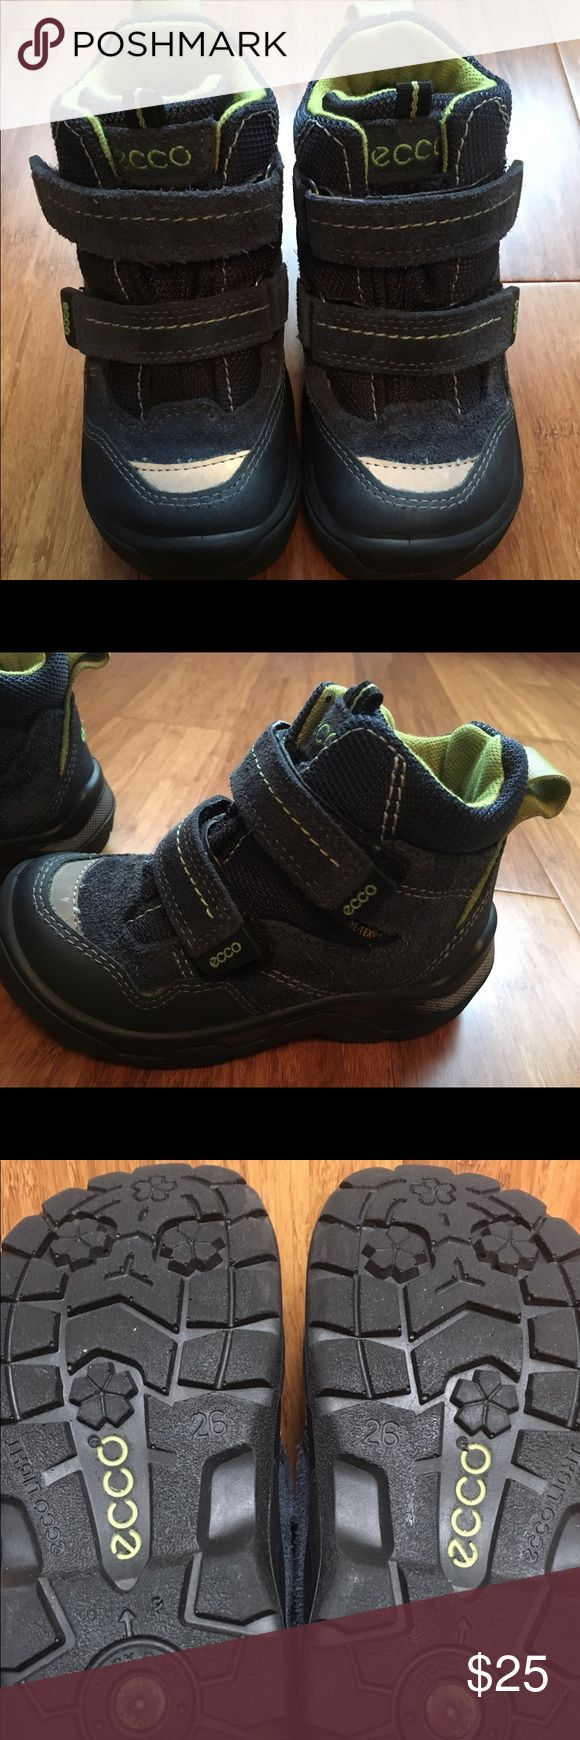 Ecco Gor-Tex toddler winter boots size 26 = US 9 Gortex warm, Waterproof, super light, adjustable velcro closure. The best winter boots ever! Your child will never complain wearing them! Ecco Shoes Rain & Snow Boots